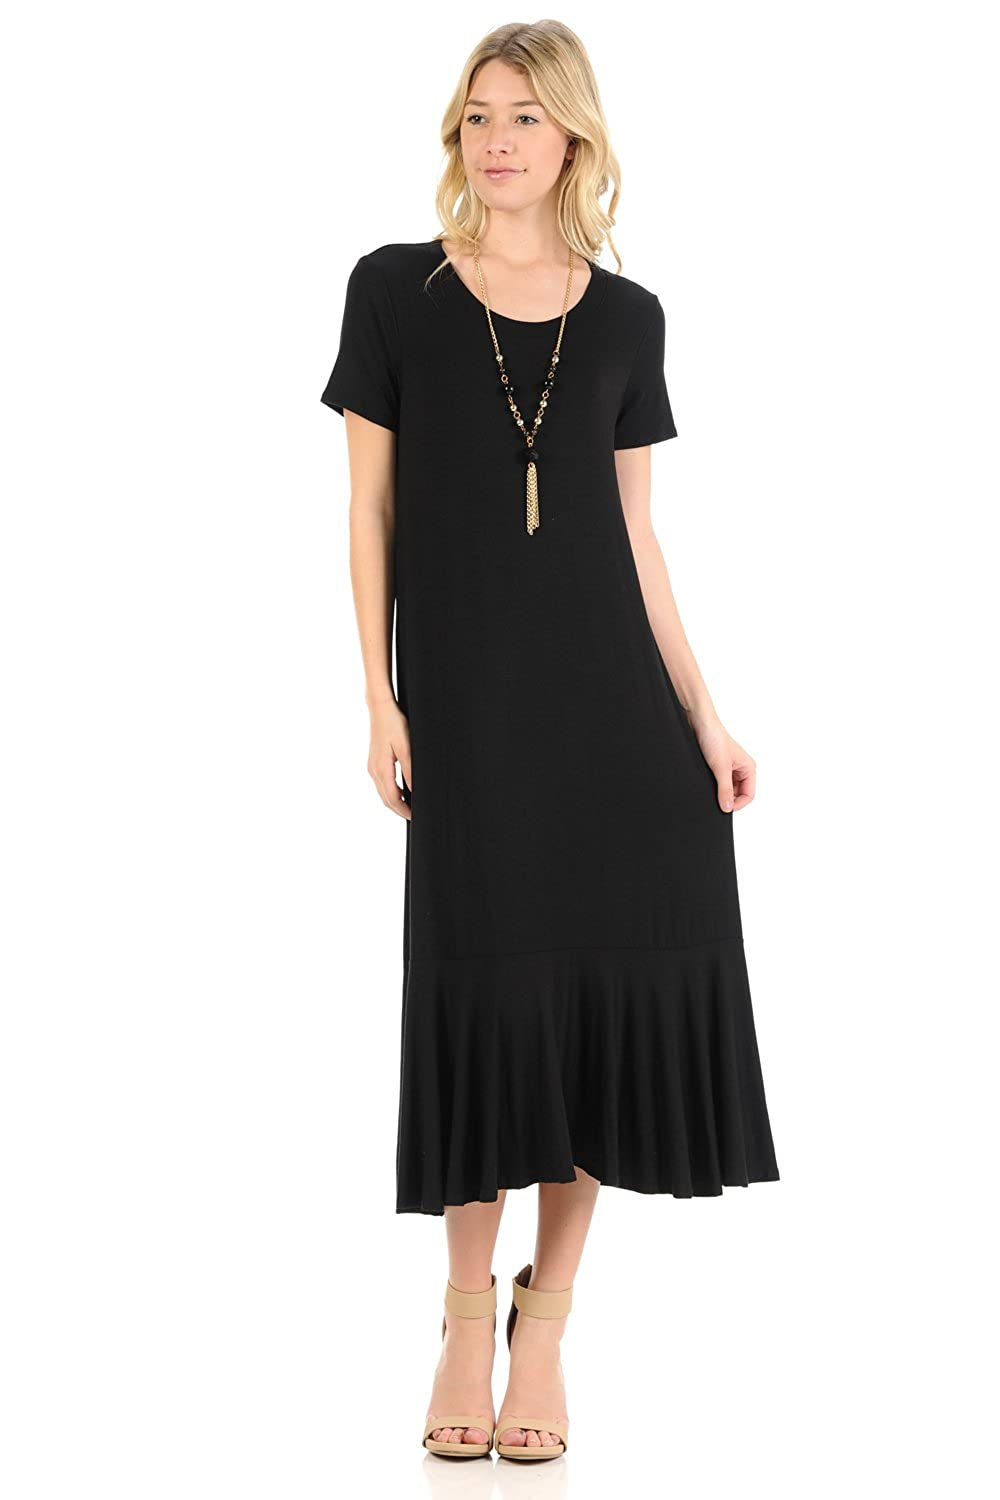 Black Flapper Dresses, 1920s Black Dresses iconic luxe Womens A-Line Ruffle Hemline Midi Dress $22.99 AT vintagedancer.com